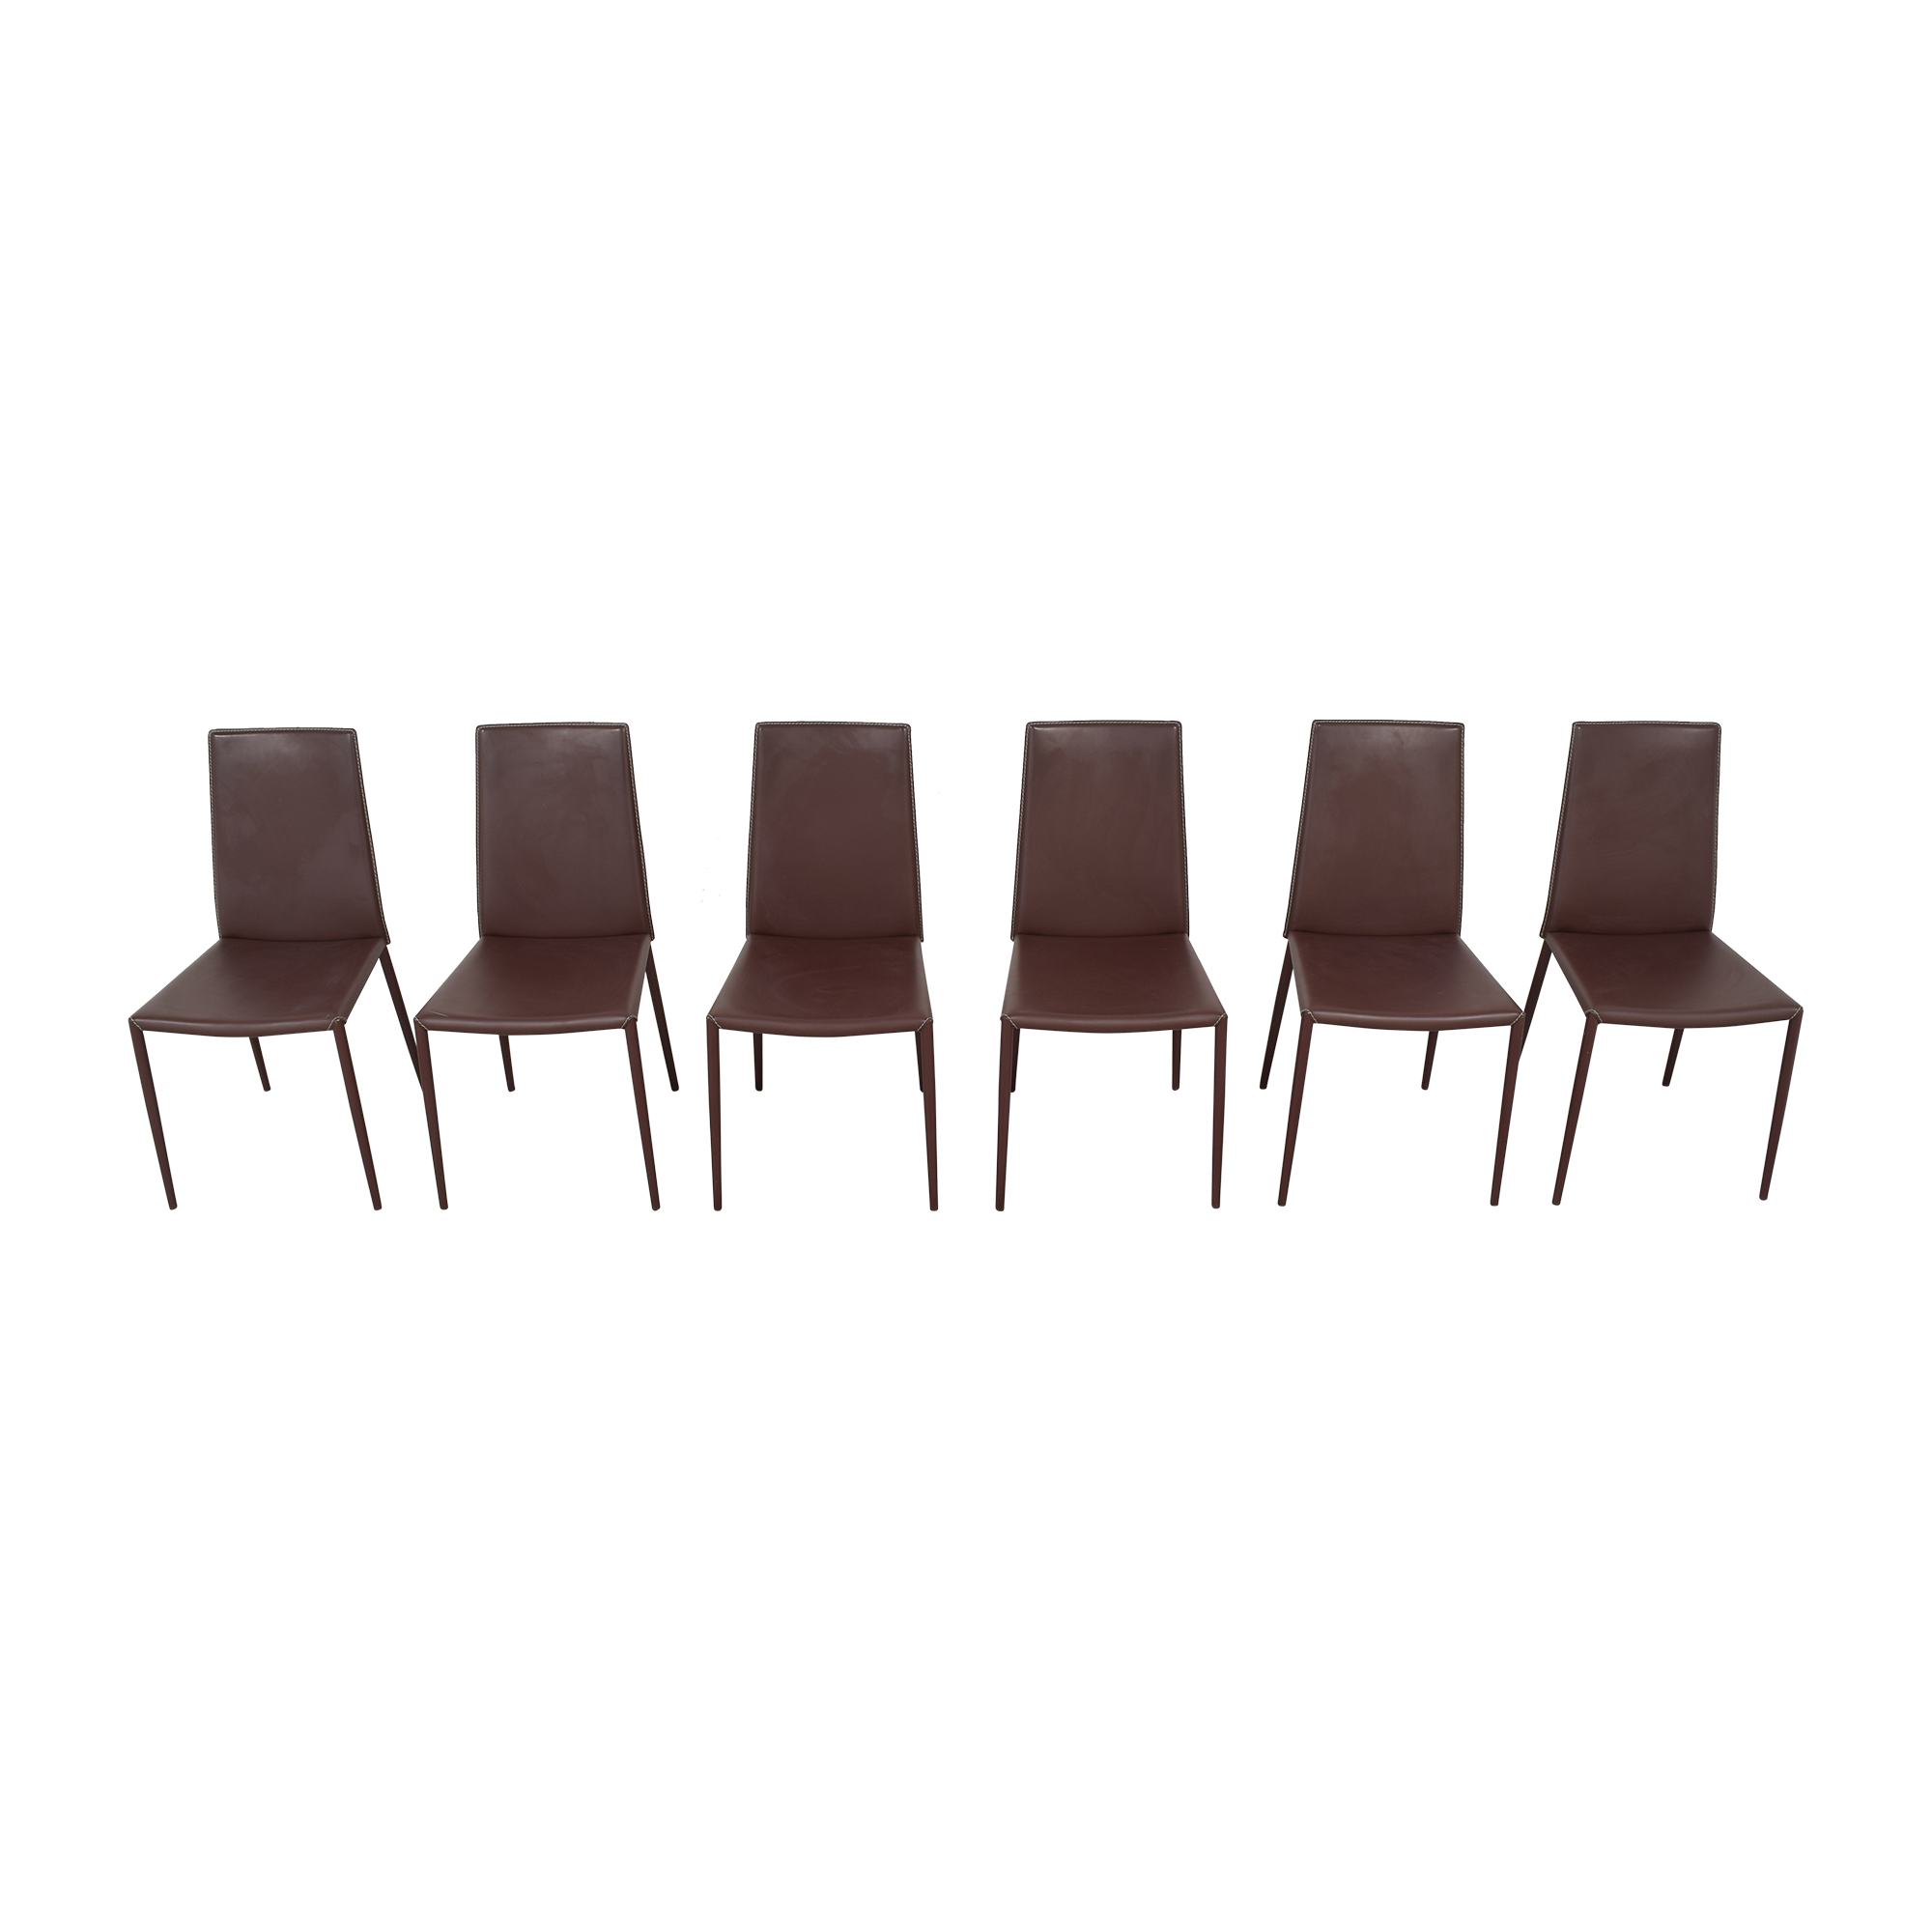 Calligaris Calligaris Boheme by Connubia Dining Chairs nyc